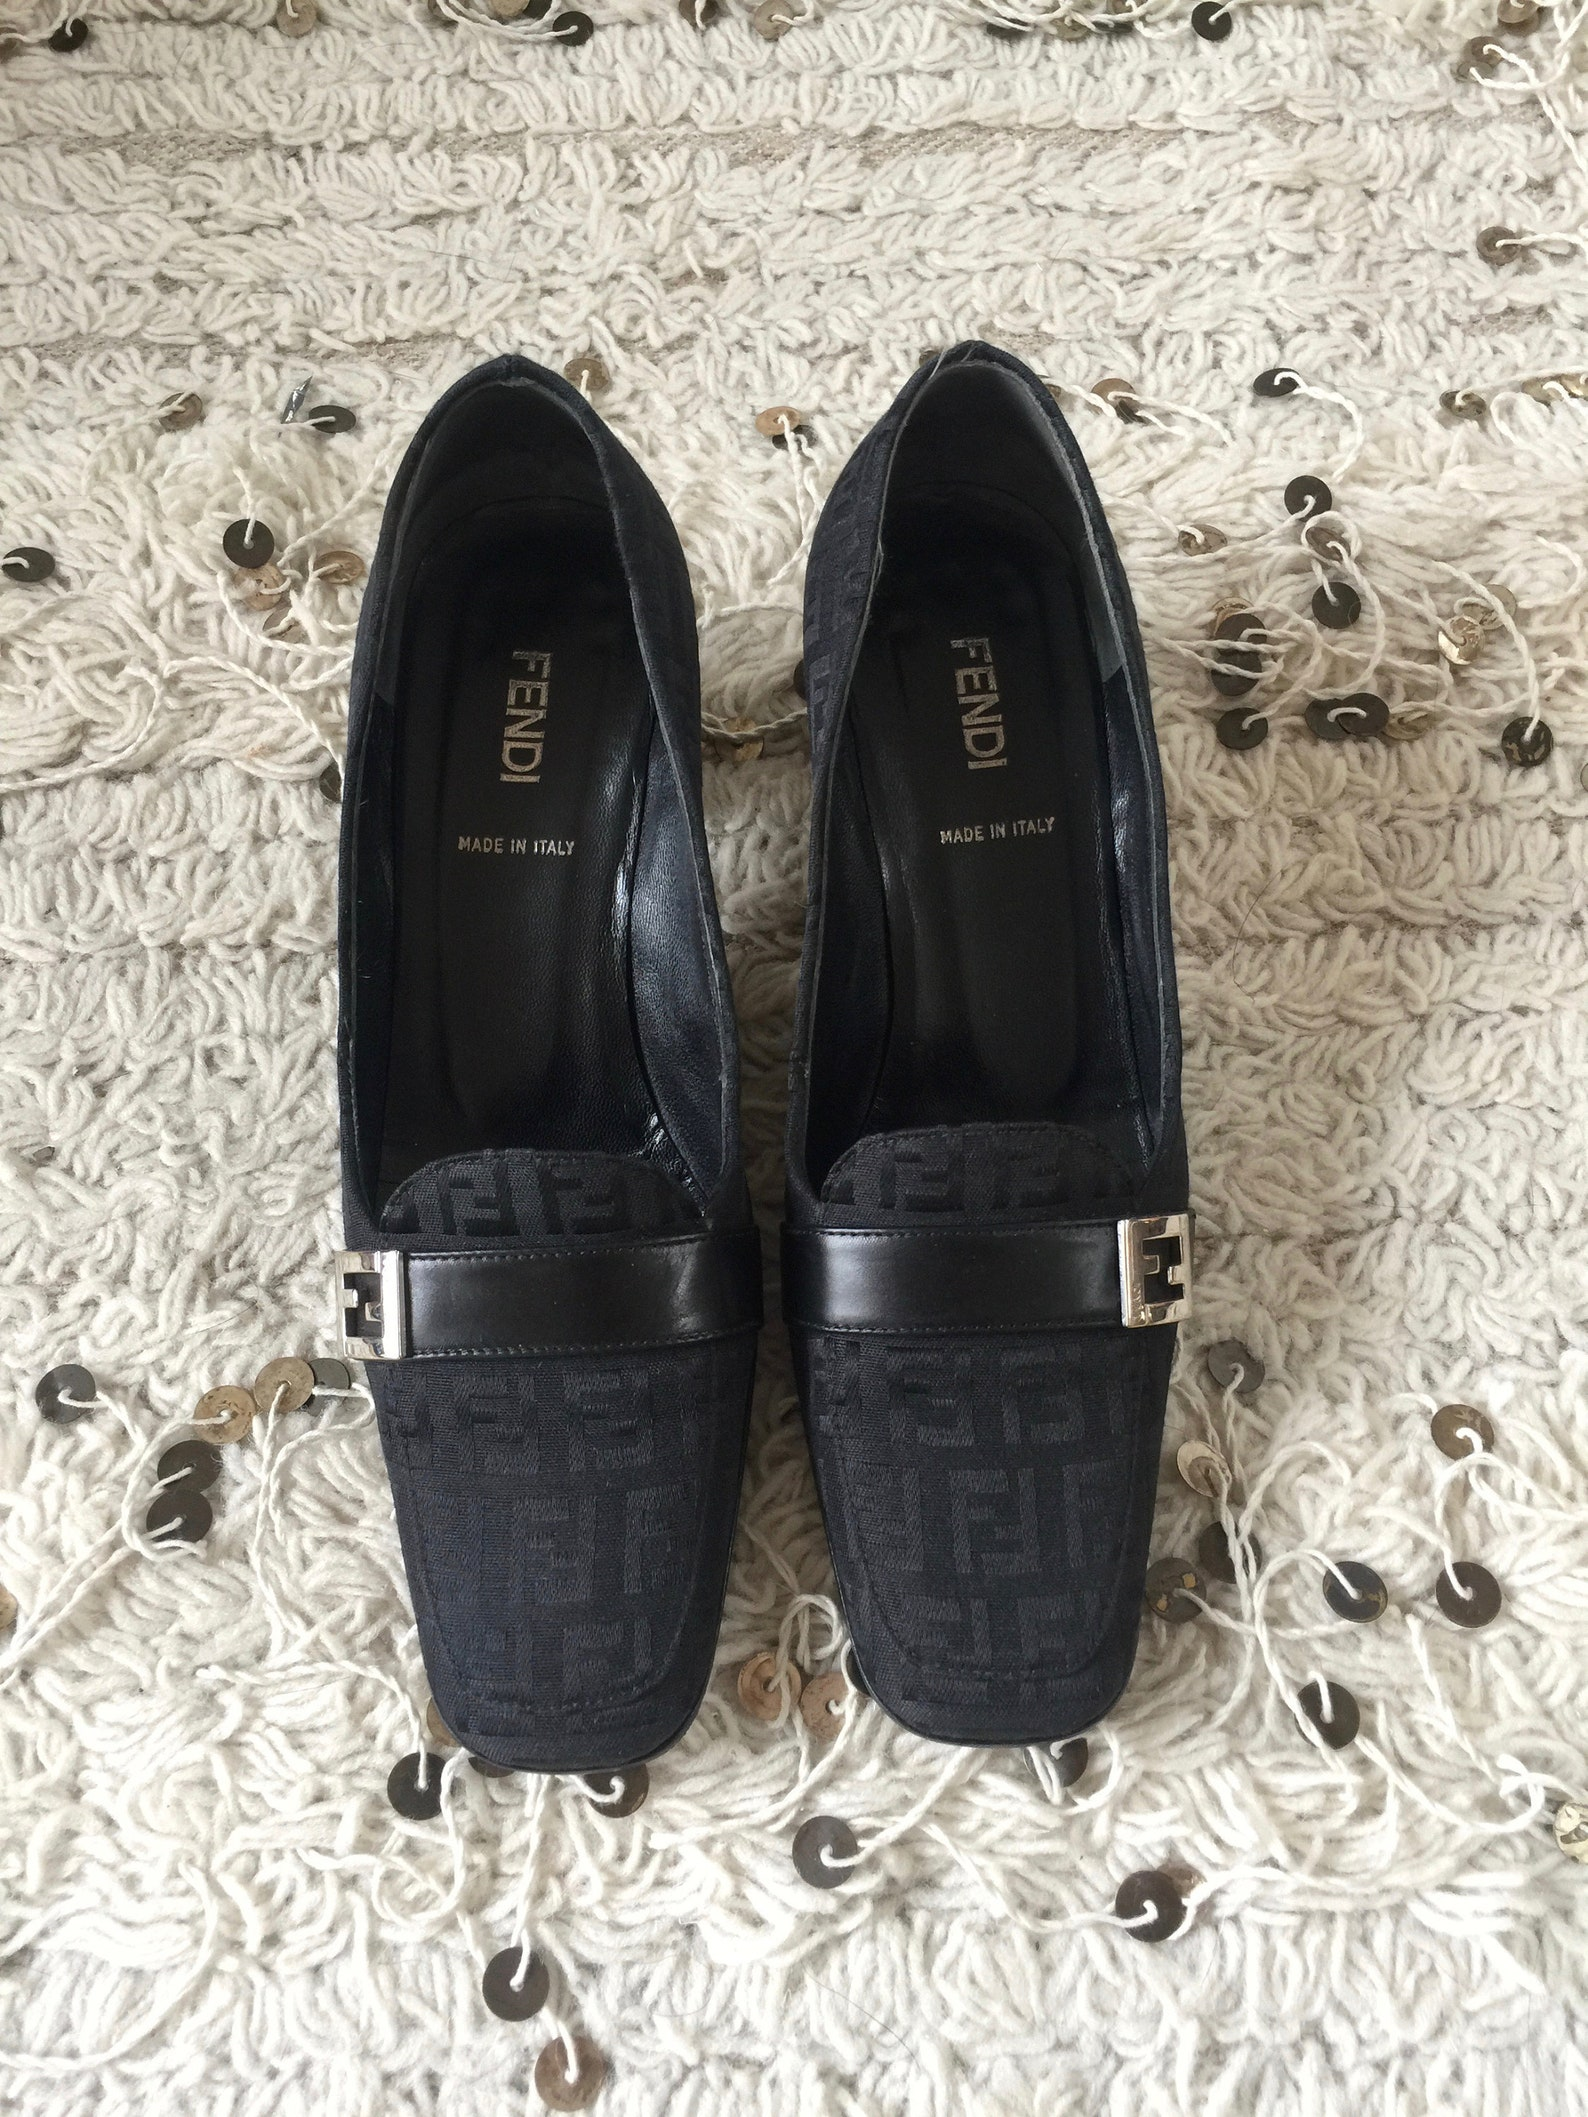 vintage fendi zucca ff monogram black loafers heels driving shoes smoking slippers ballet flats 37 us 6.5 - 7